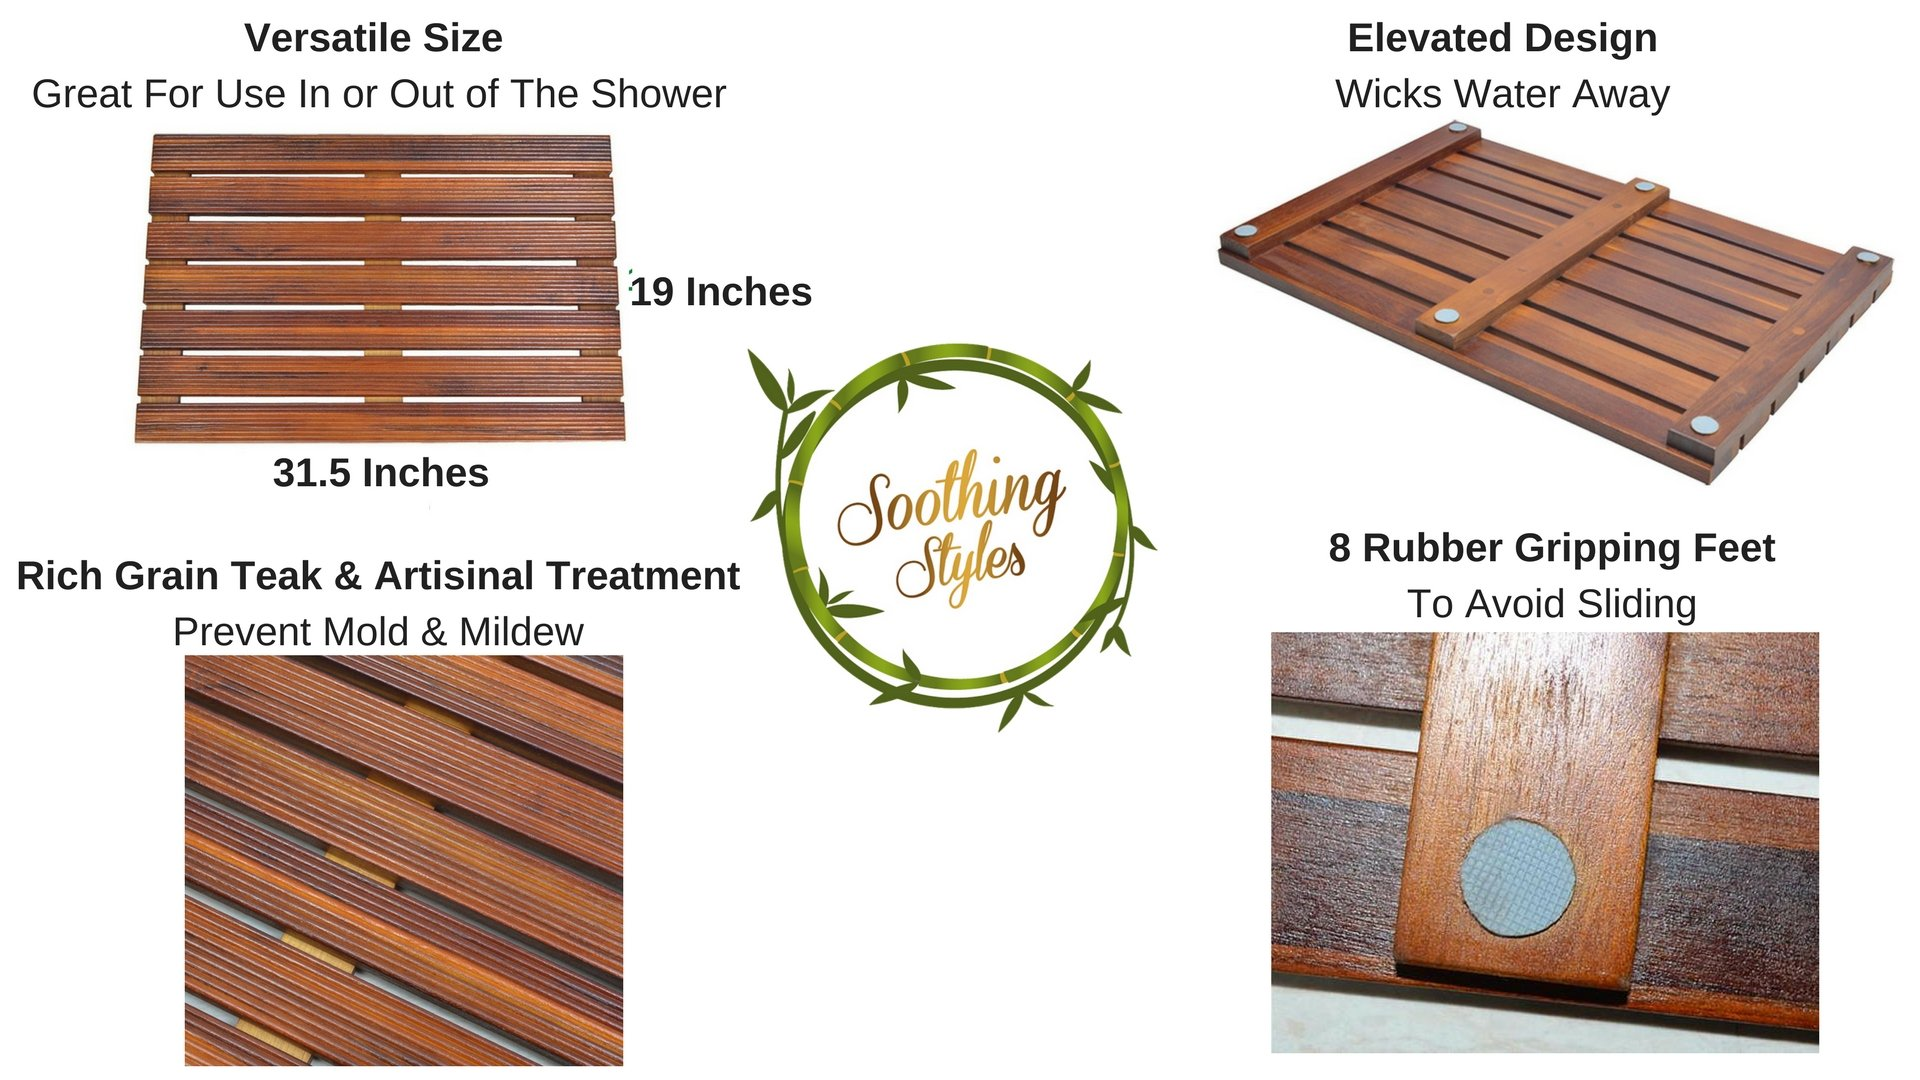 """Soothing Styles Luxury Teak Bath Mat Large Size with Non Slip Feet & Natural Mildew Resistance for a Hotel Bathmat Inside The Shower or on The Bathroom Floor! [31.5"""" x 19""""]"""